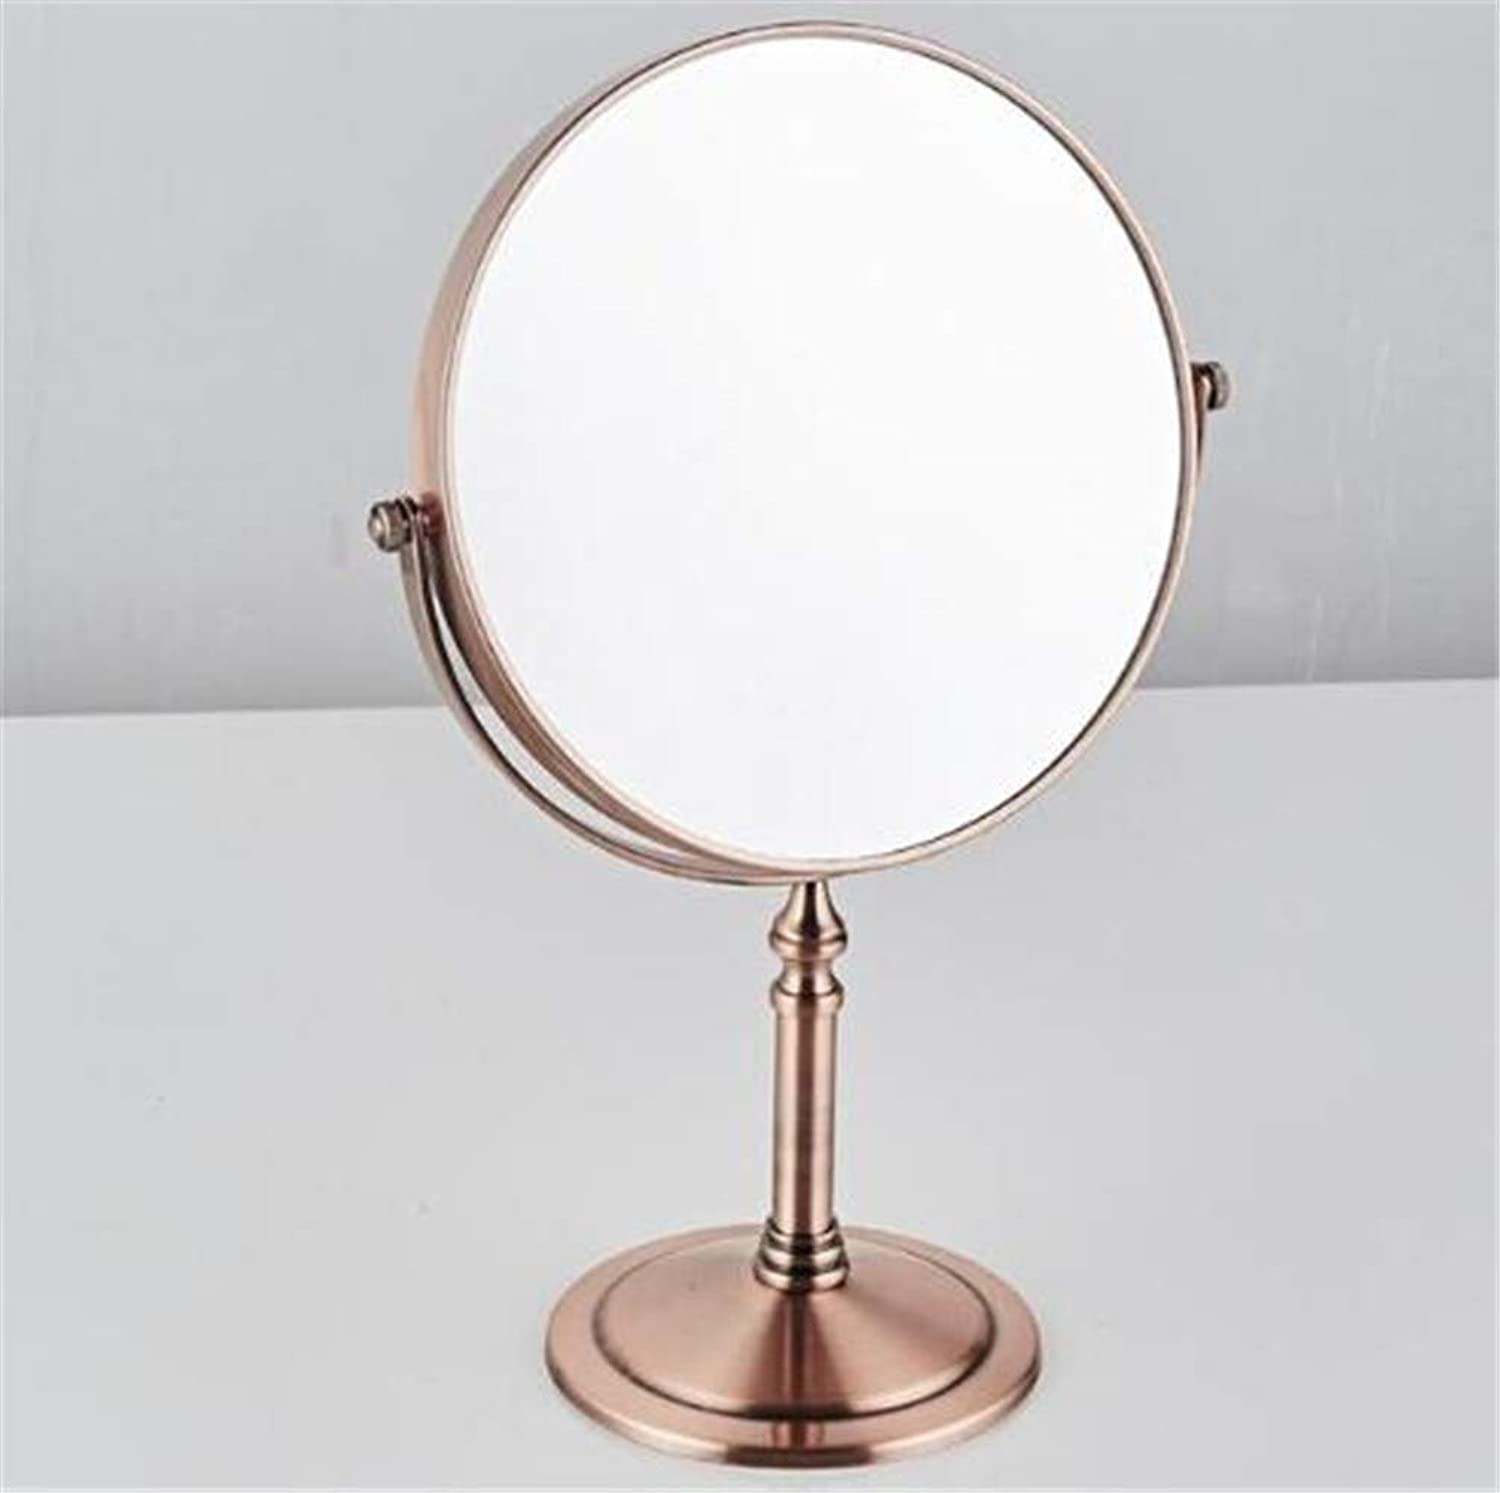 LUDSUY Antique Copper Arrival Makeup Mirror Professional Vanity Mirror Bathroom Accessories 360 redating Free Magnifier, B